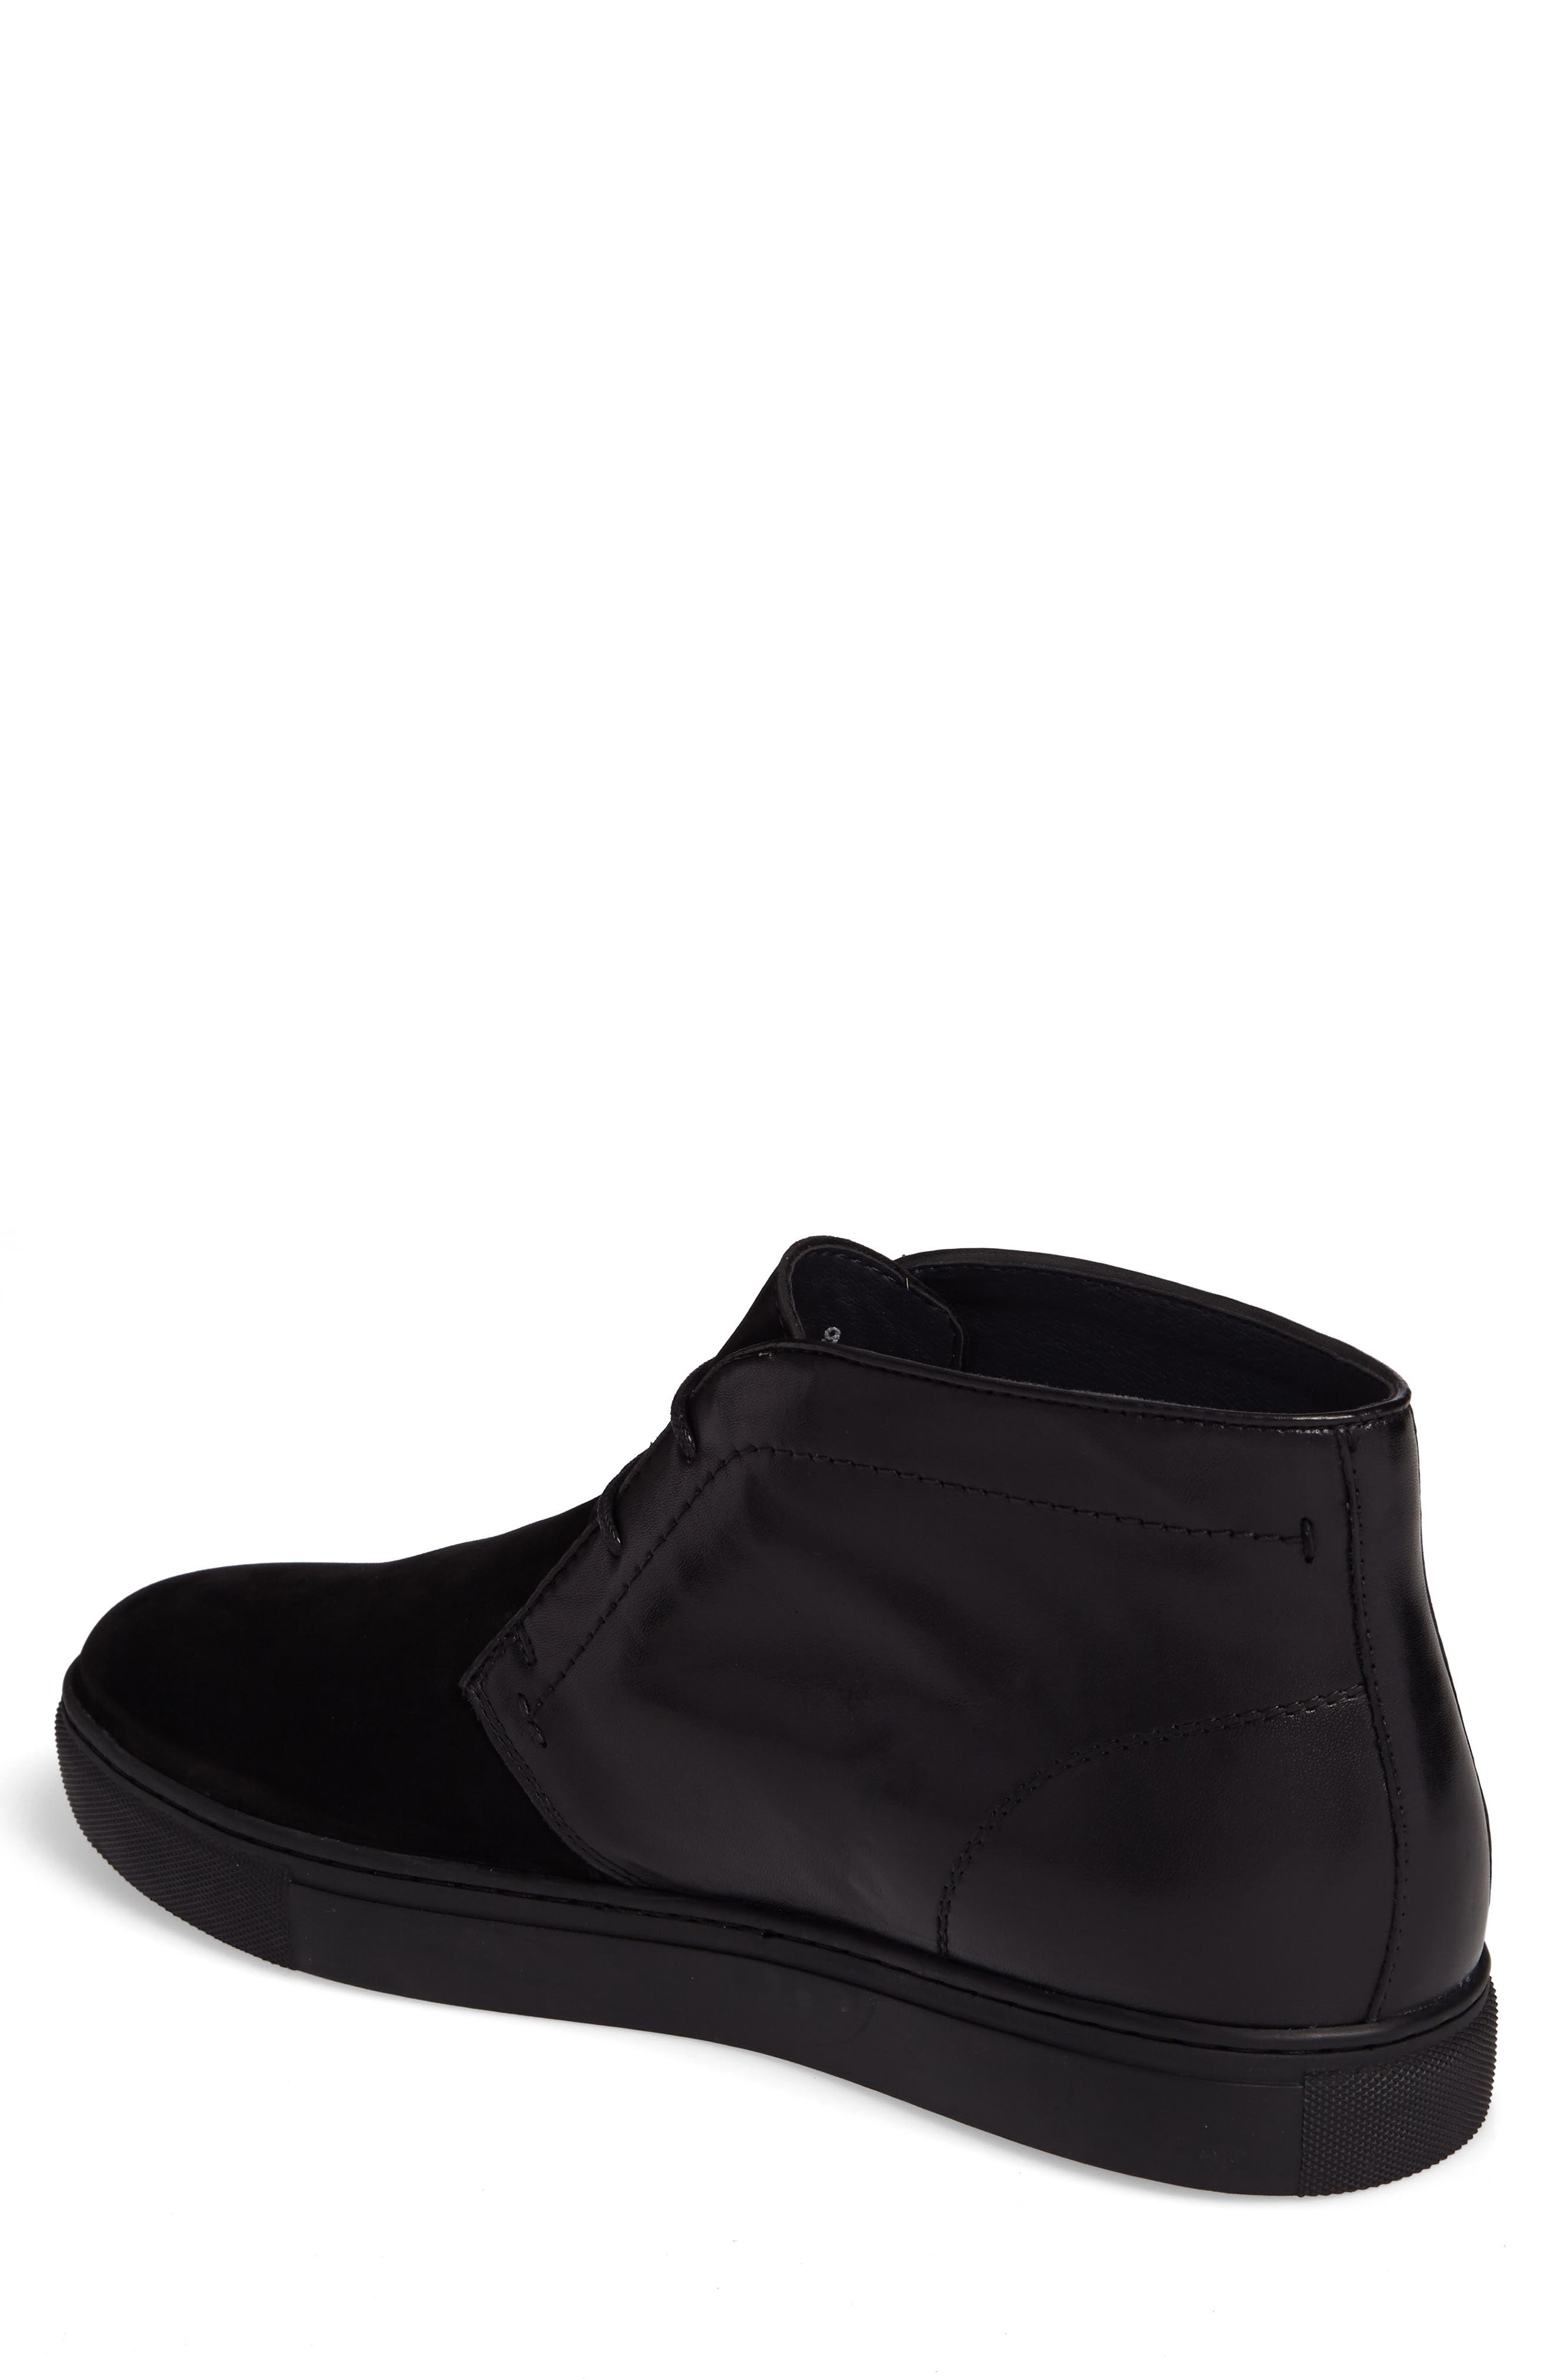 Laxey Mid Sneaker,                             Alternate thumbnail 3, color,